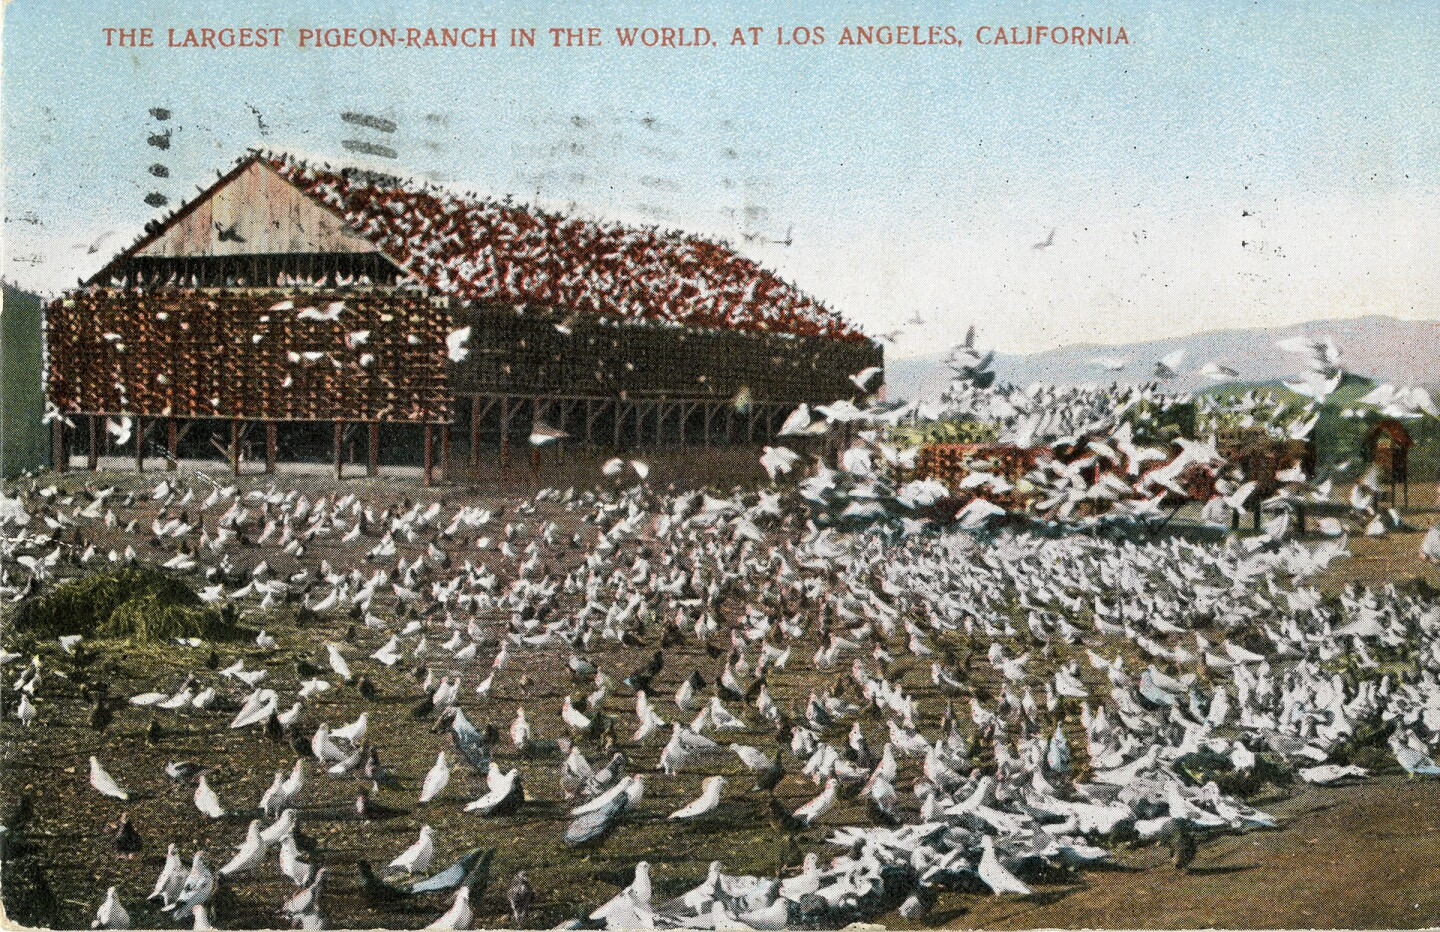 Largest Pigeon-Ranch in the World, at Los Angeles, California